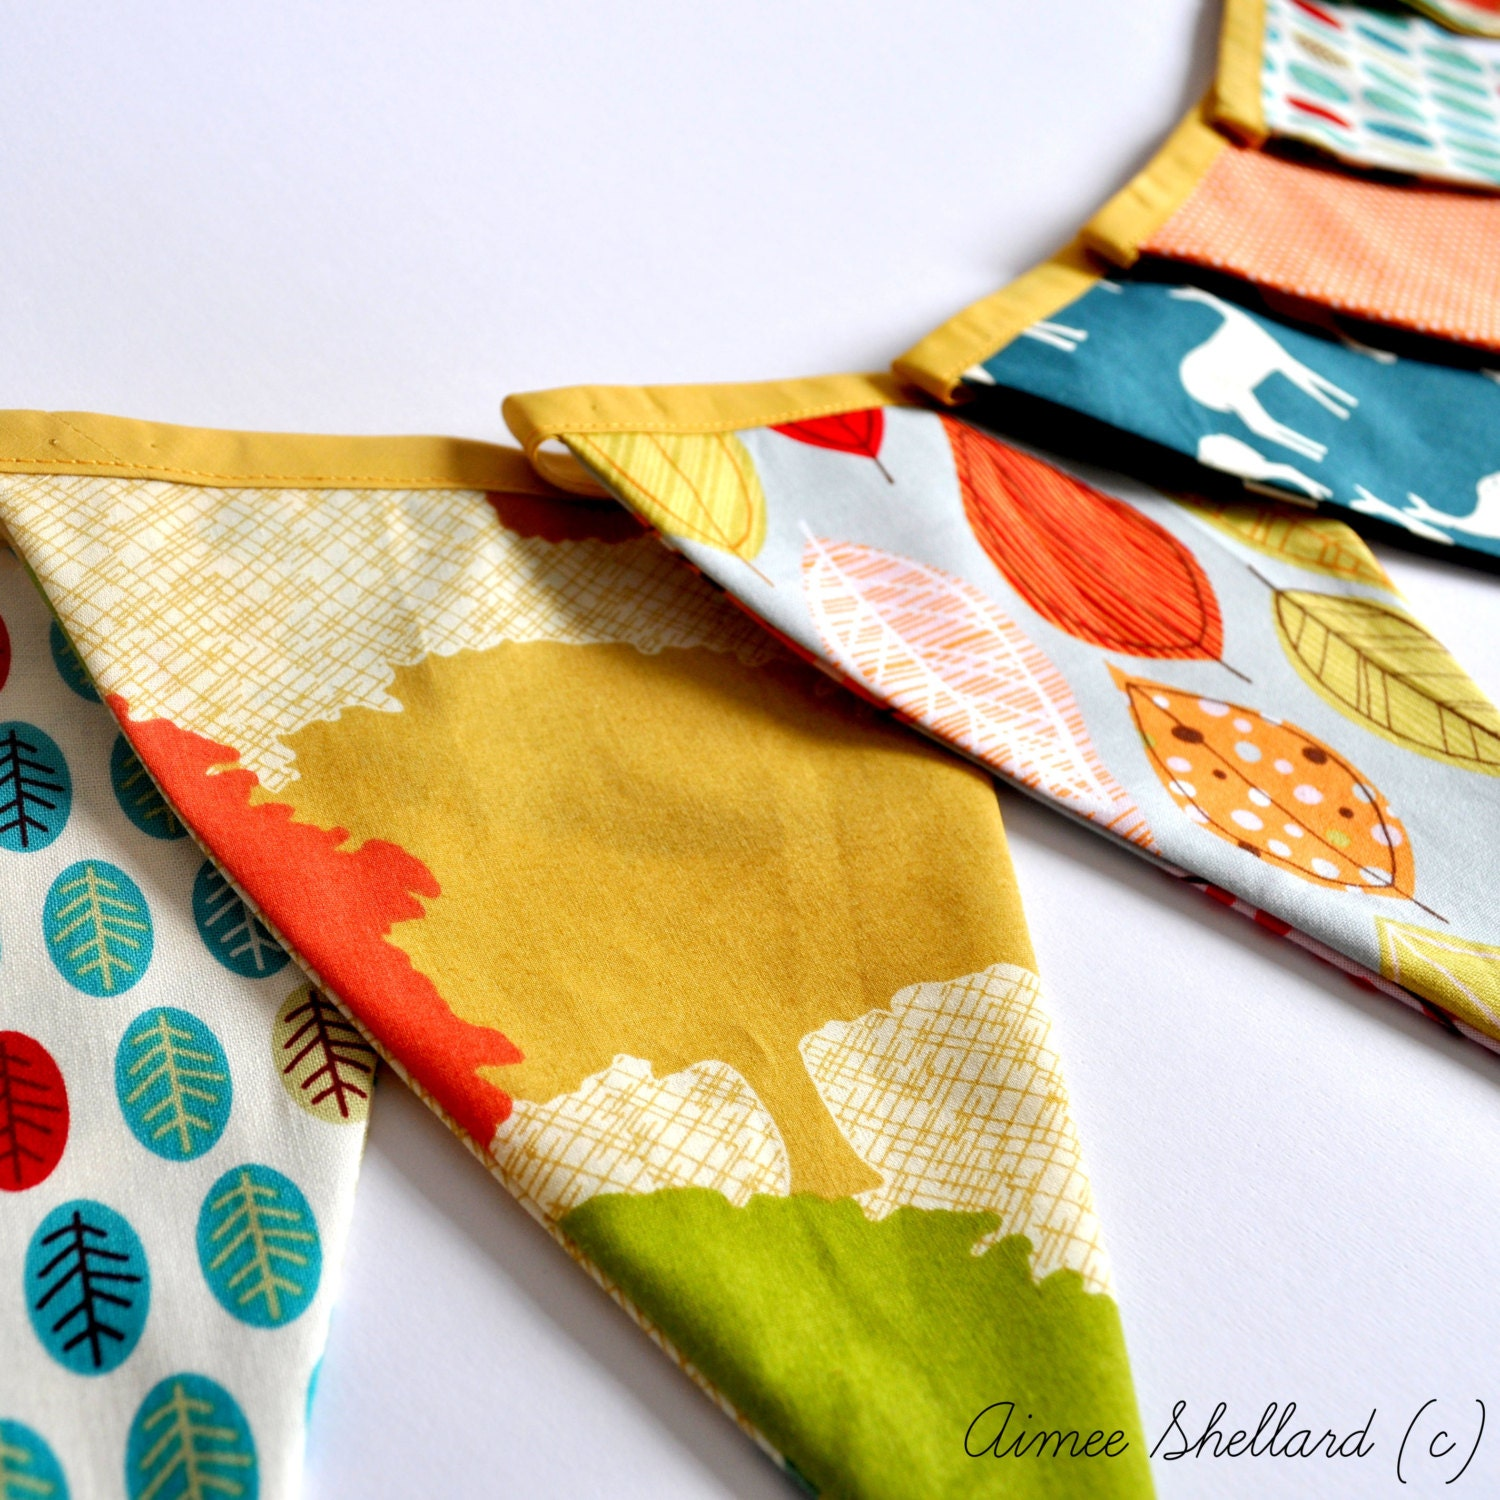 Into The Woods - Bunting 470cm - Orange, Mustard, Green - AimeesHandmadeHoard